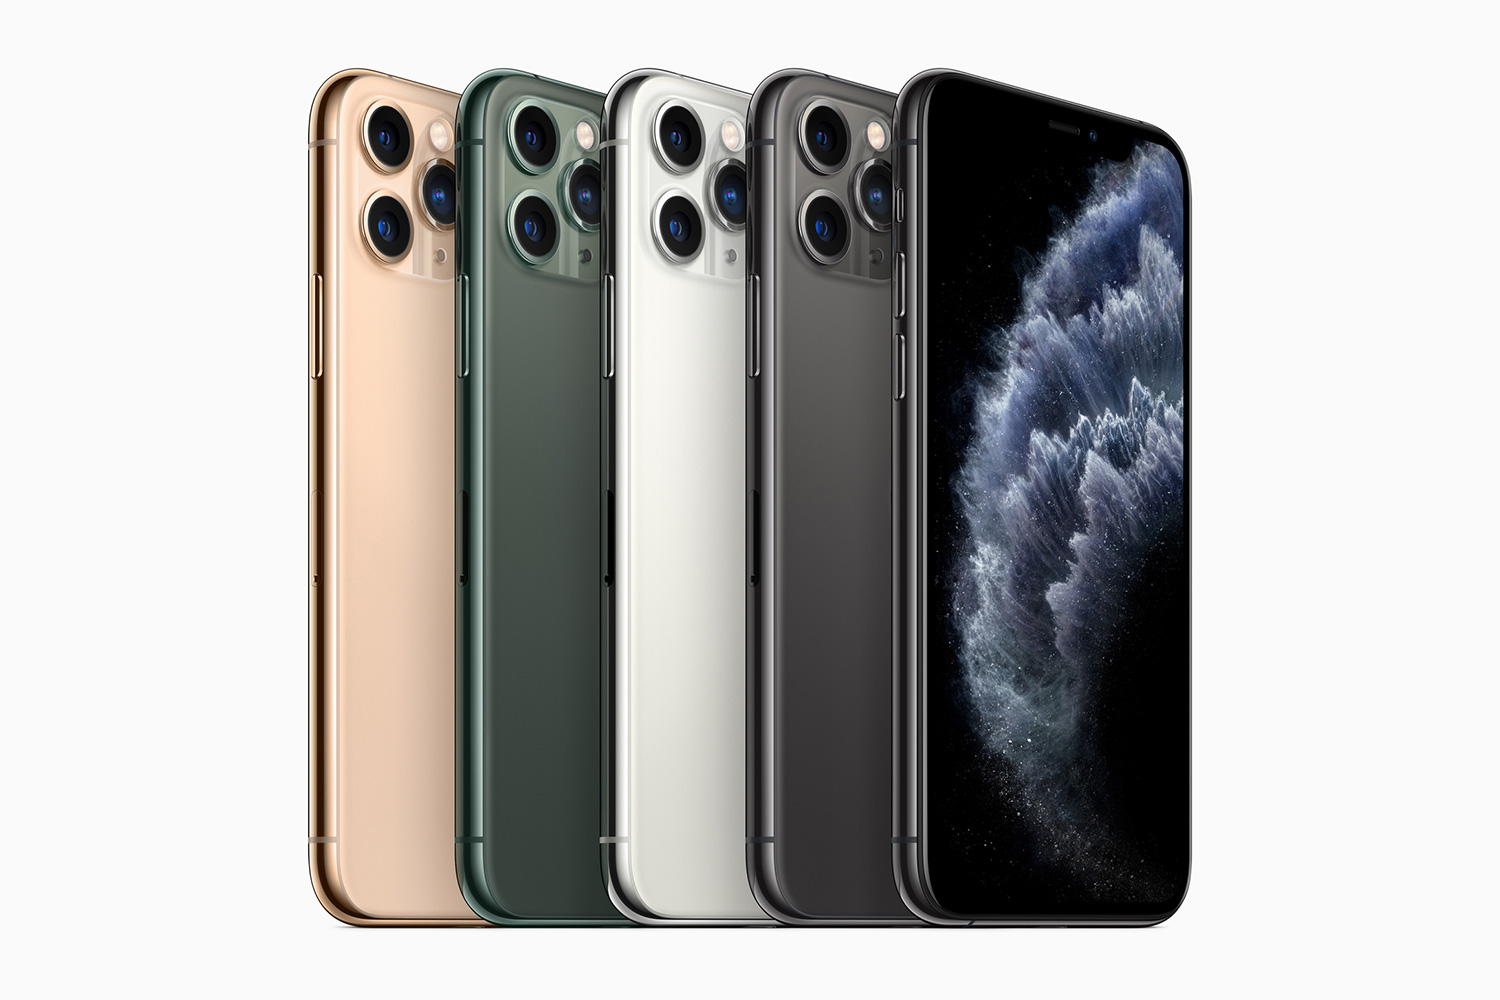 اپل آیفون ۱۱ پرو / Iphone 11 po apple